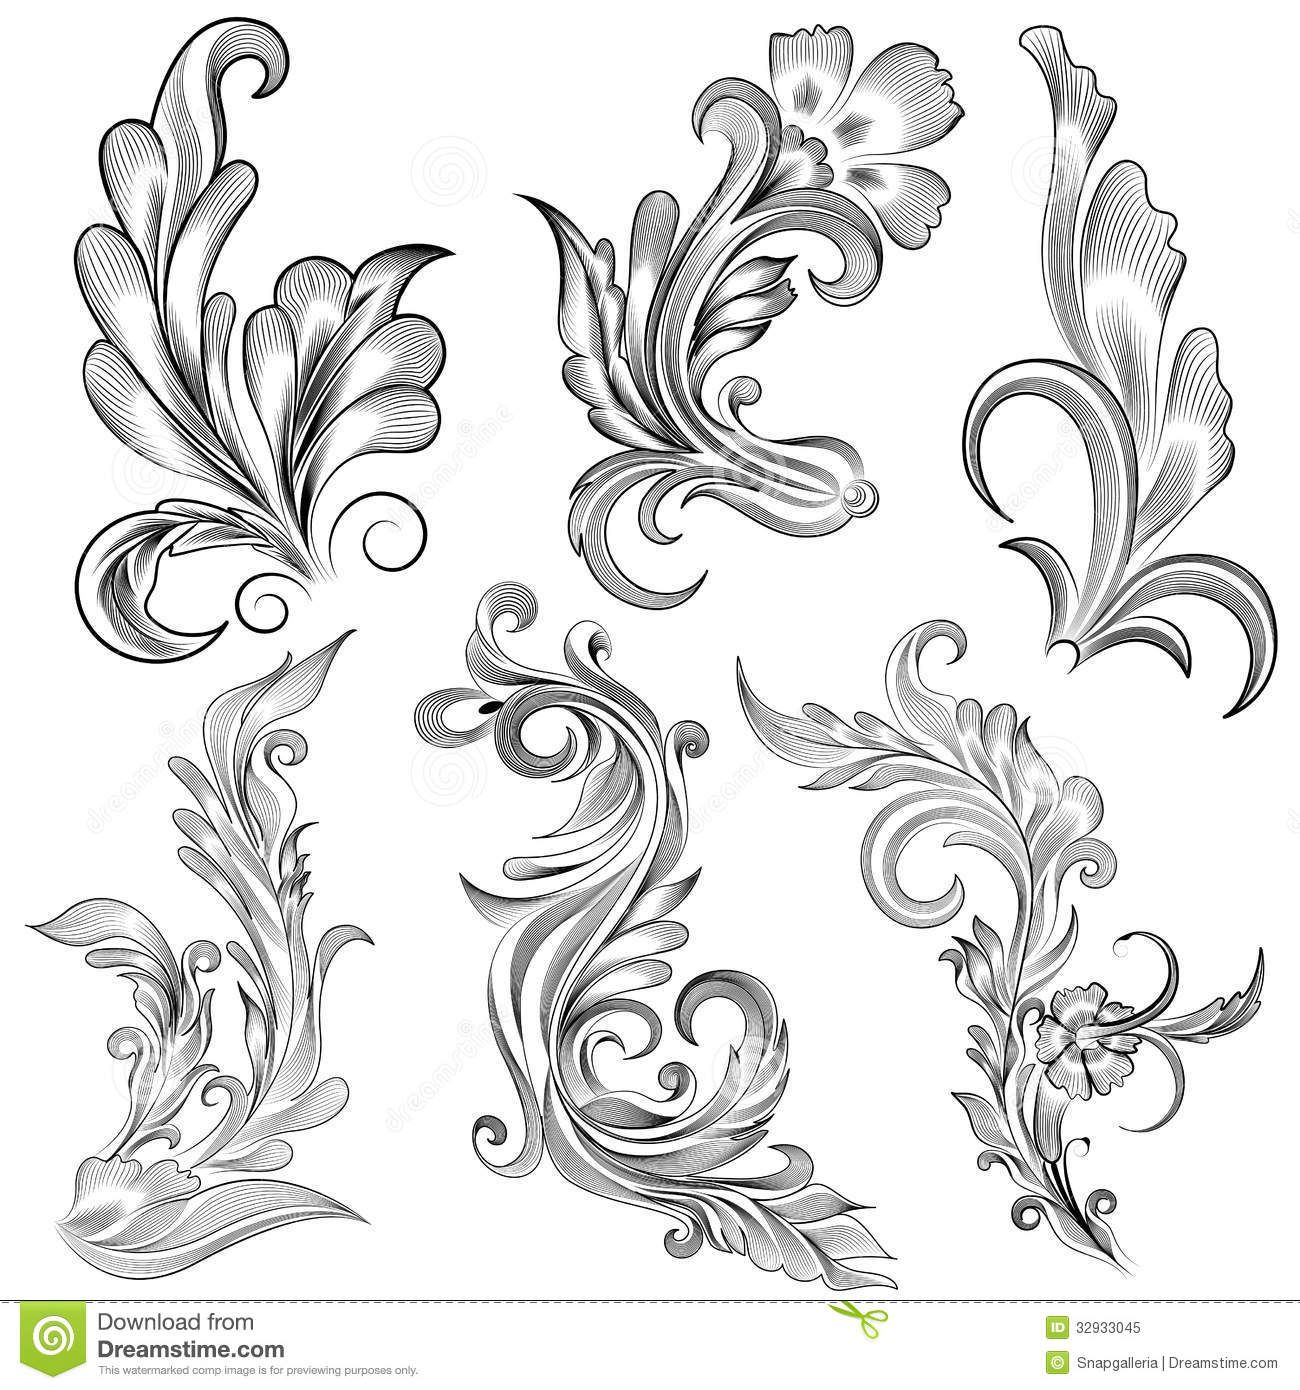 Floral calligraphic design easy to edit vector